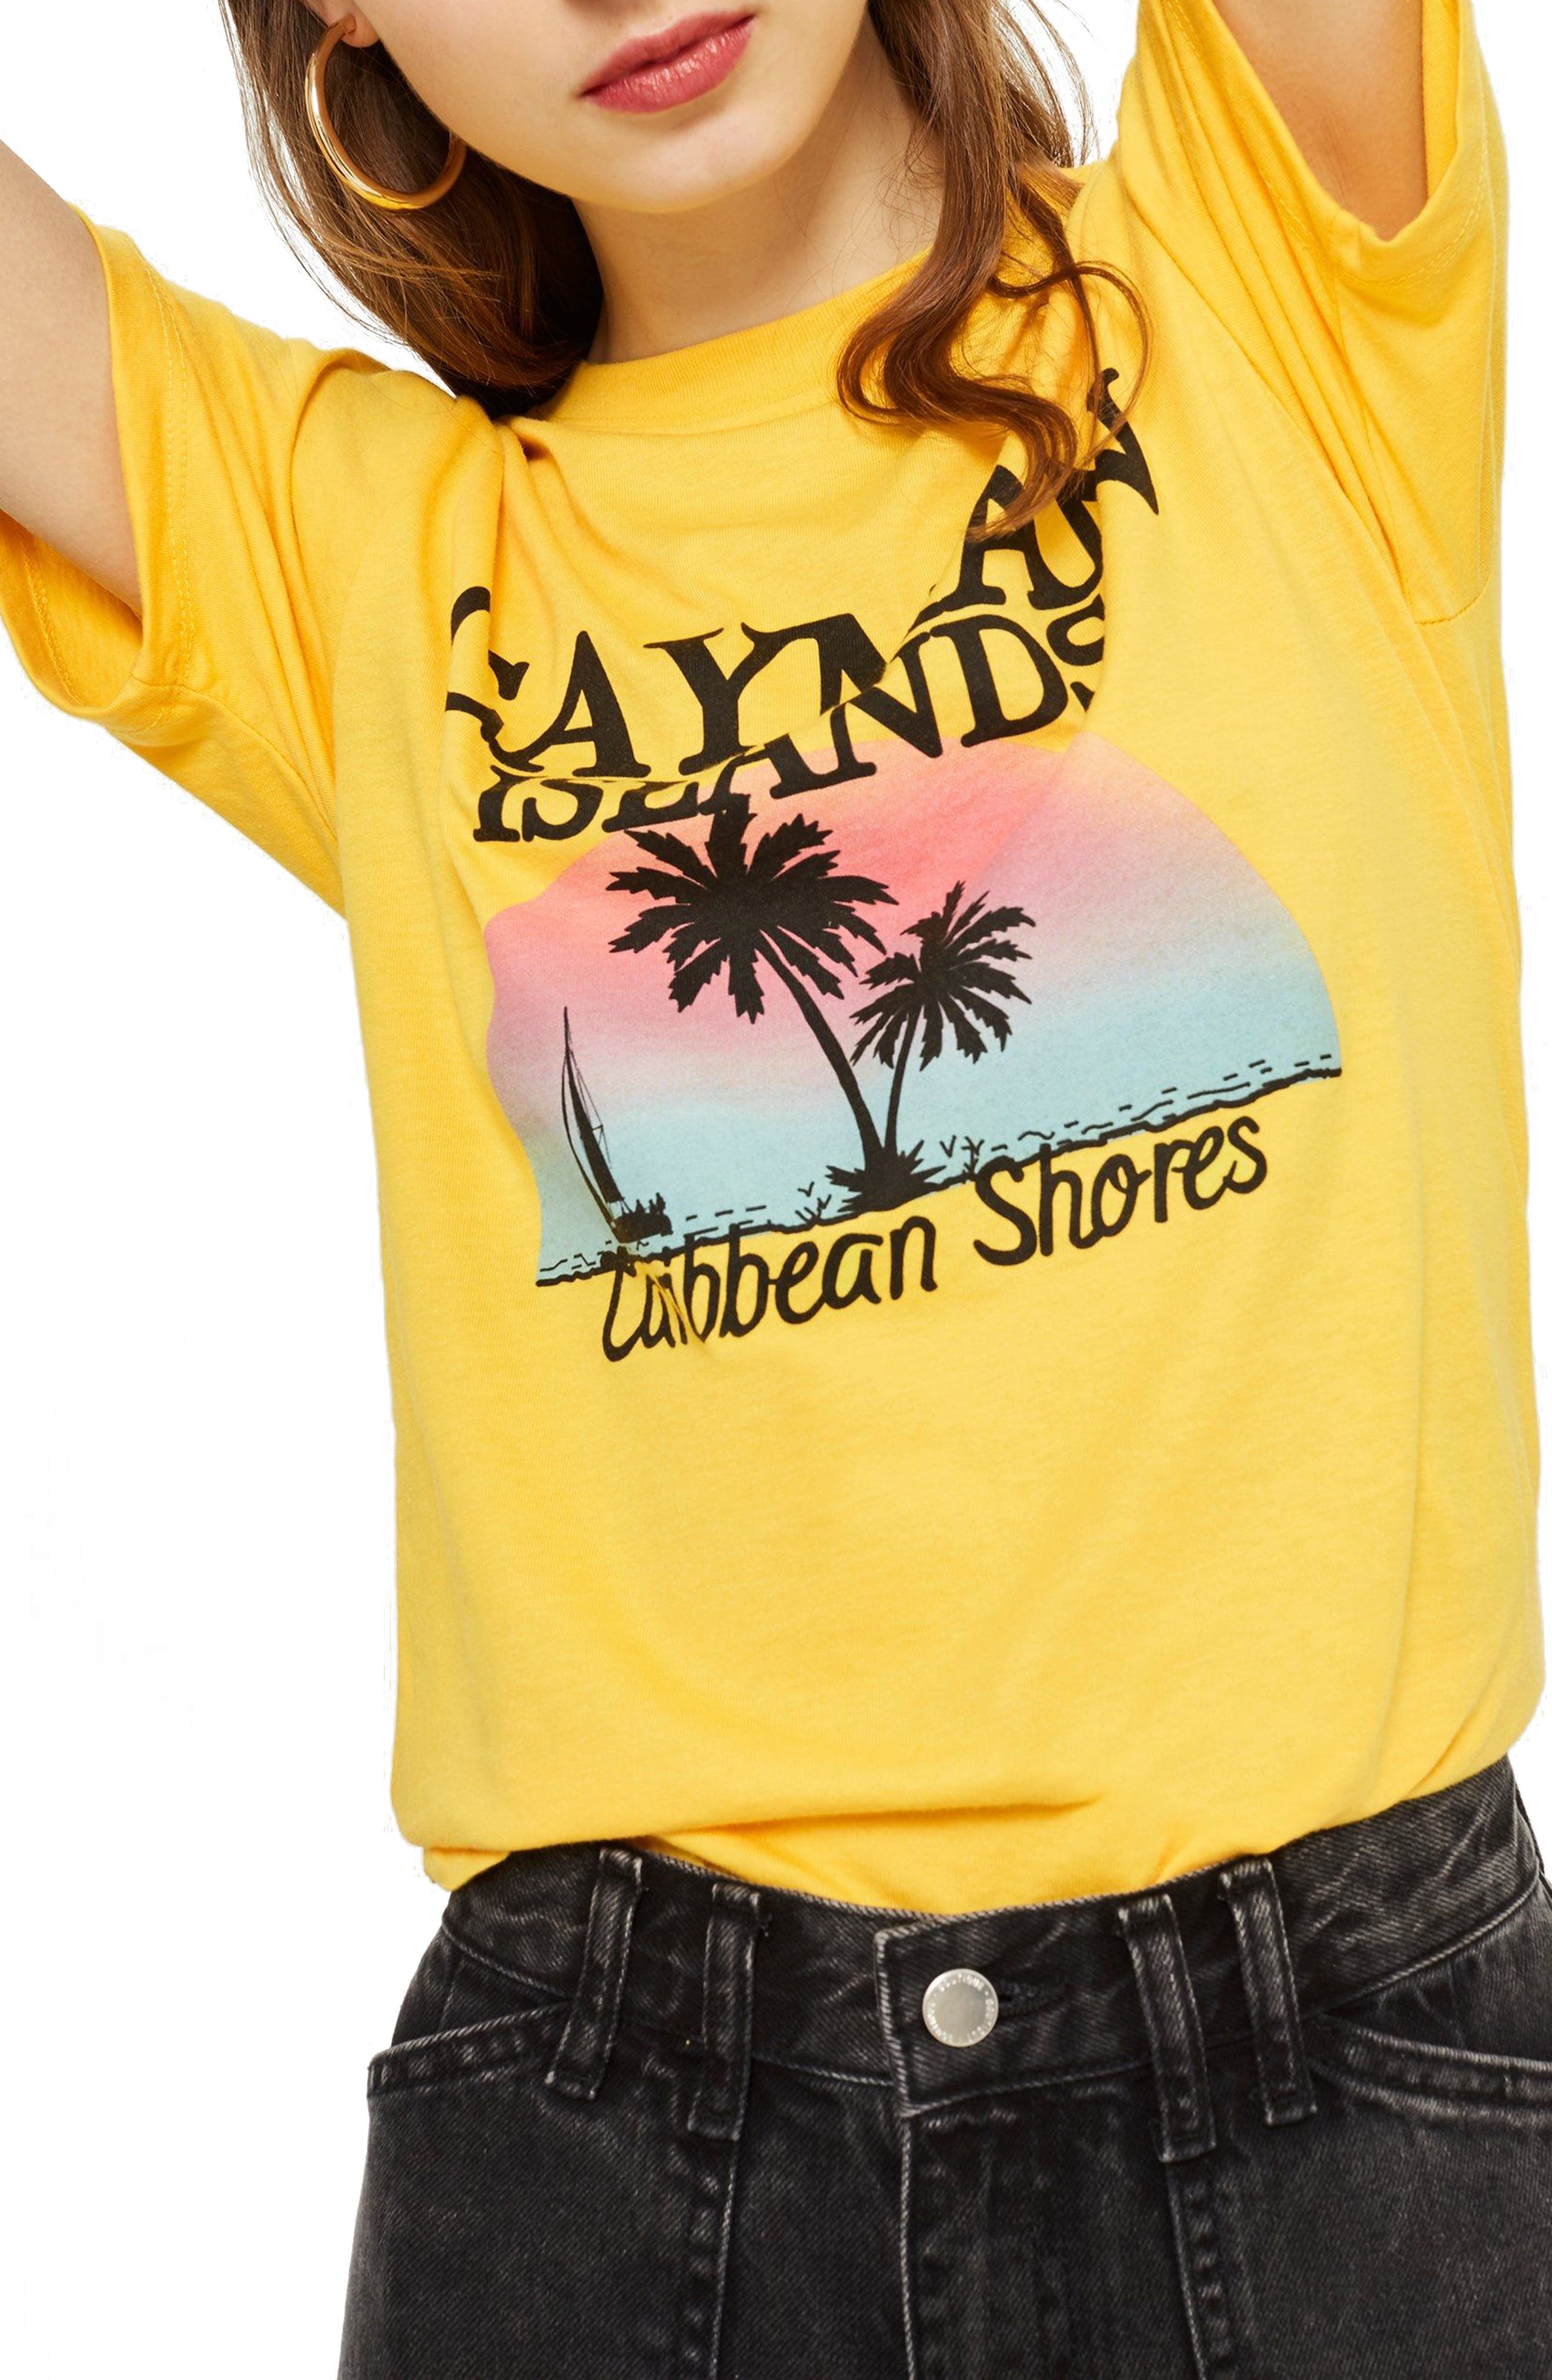 Cayman Island Print T-Shirt,                             Main thumbnail 1, color,                             700